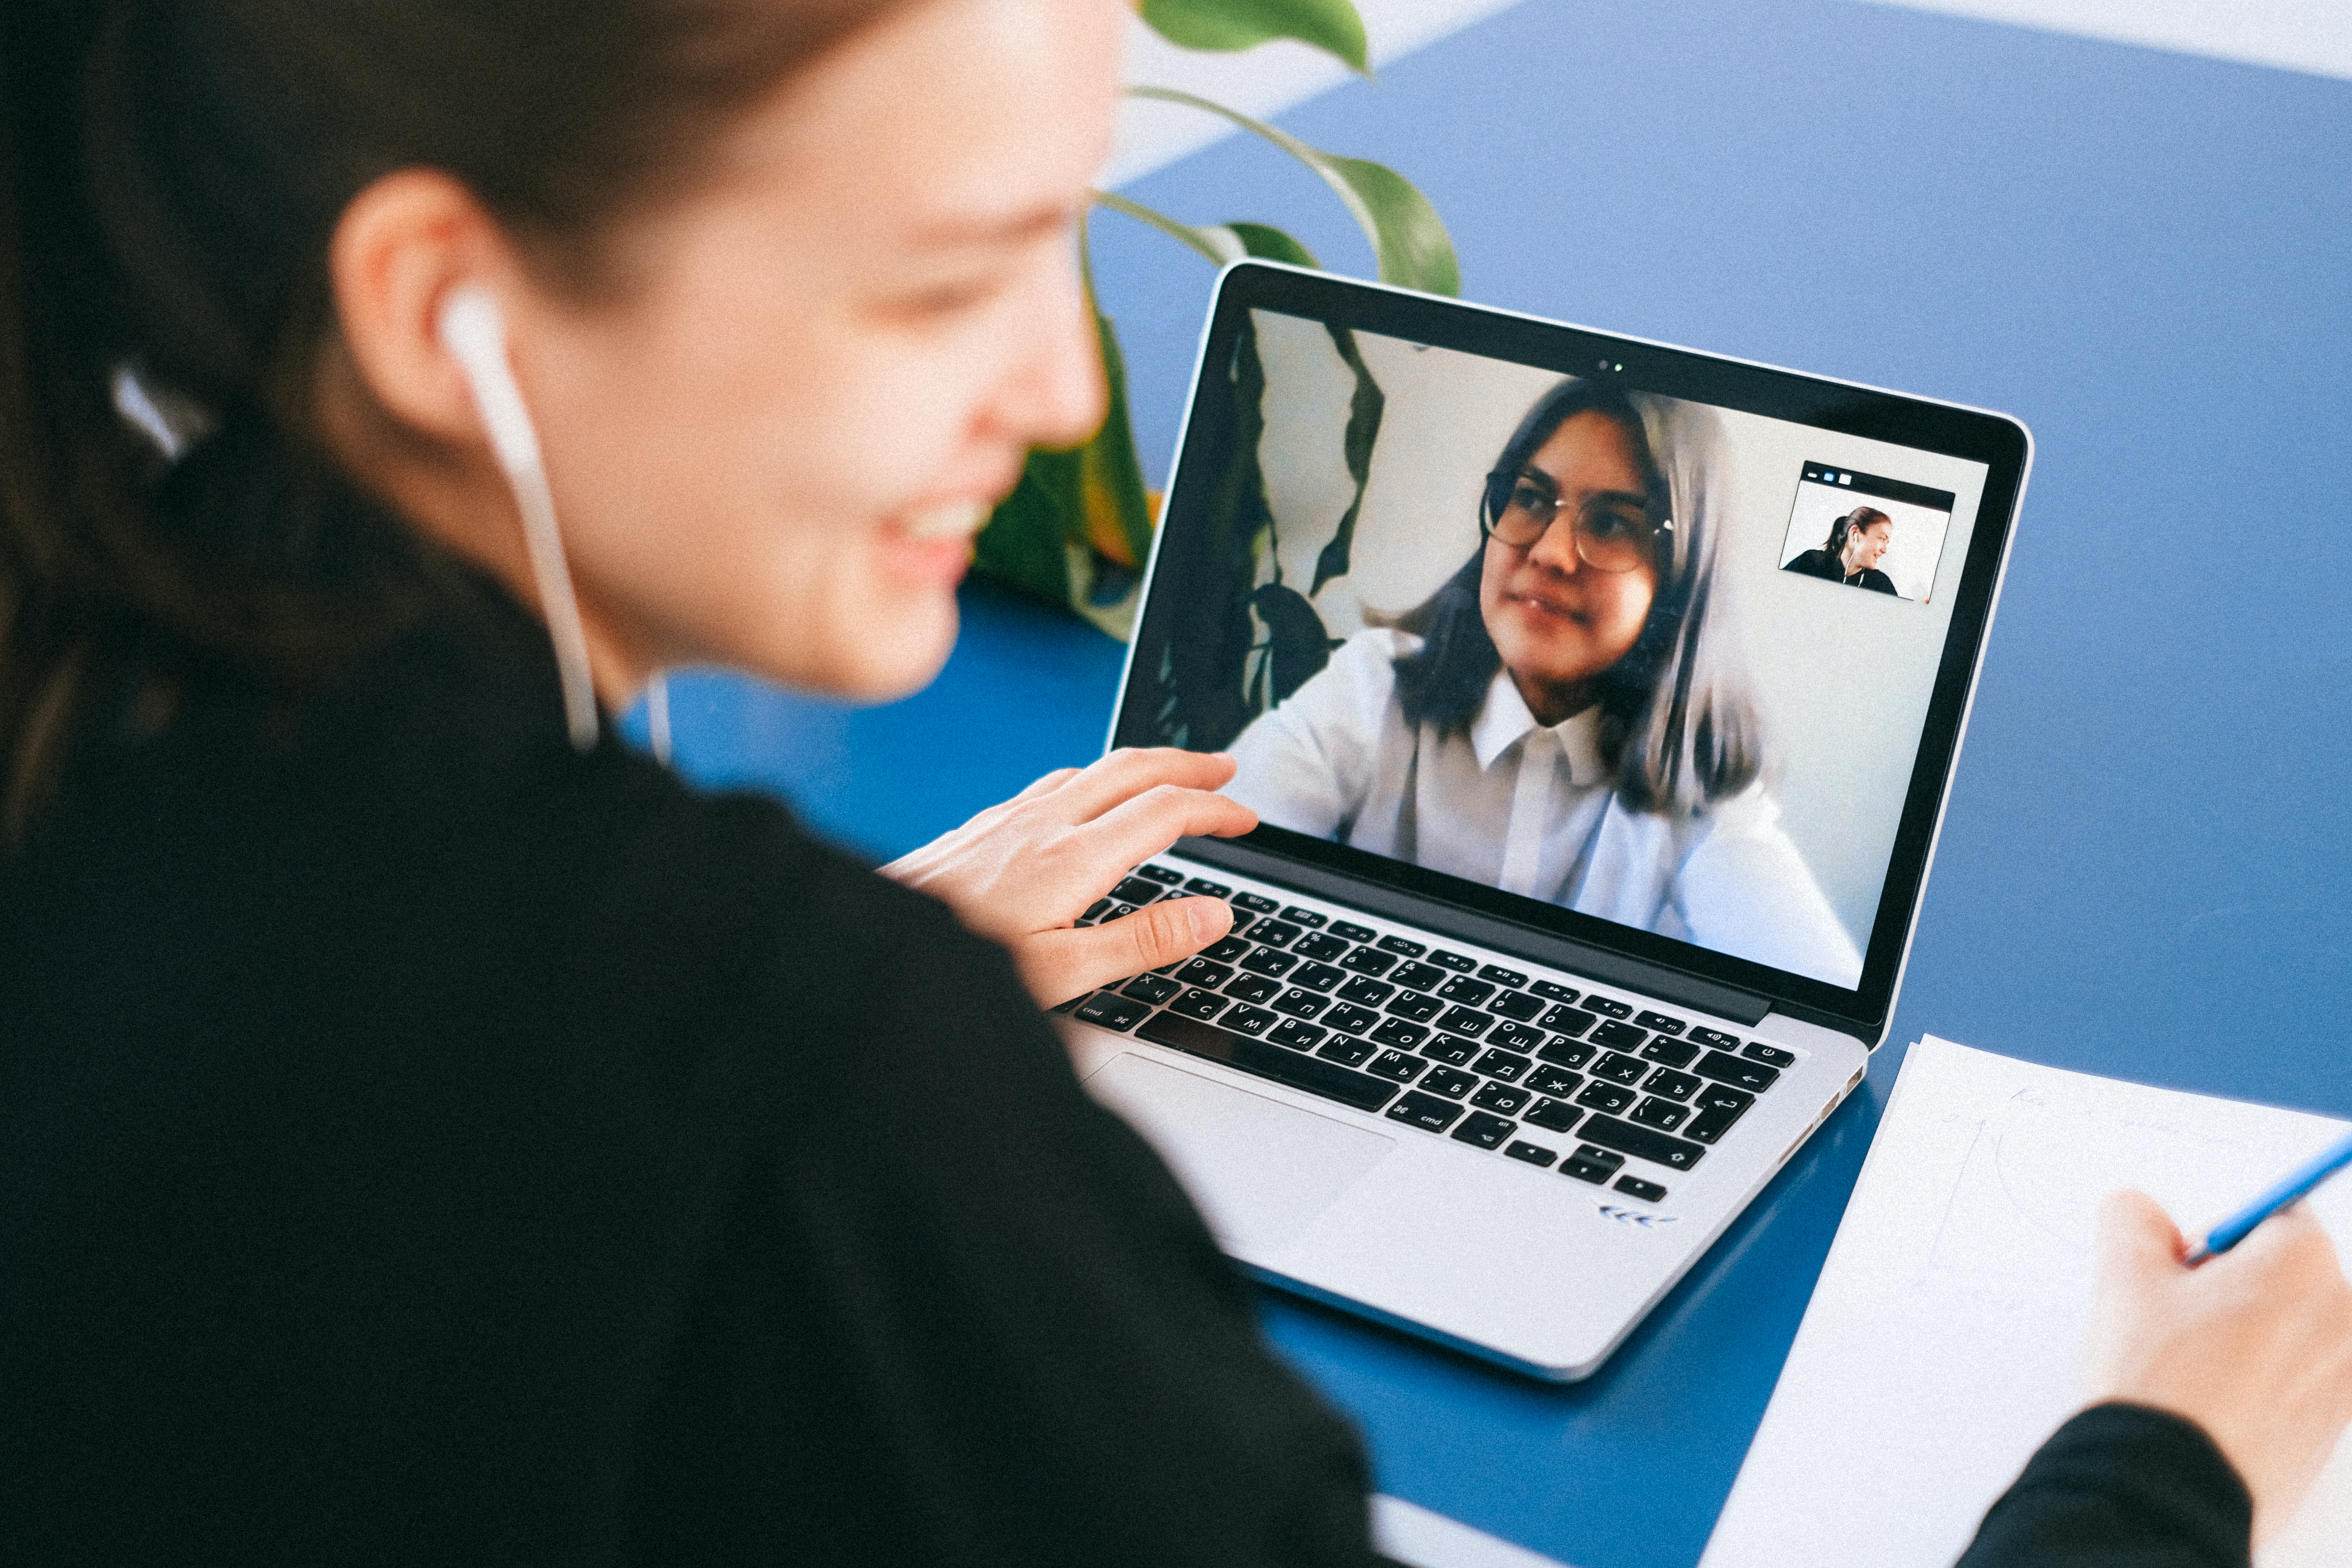 people-on-a-video-call-4226262